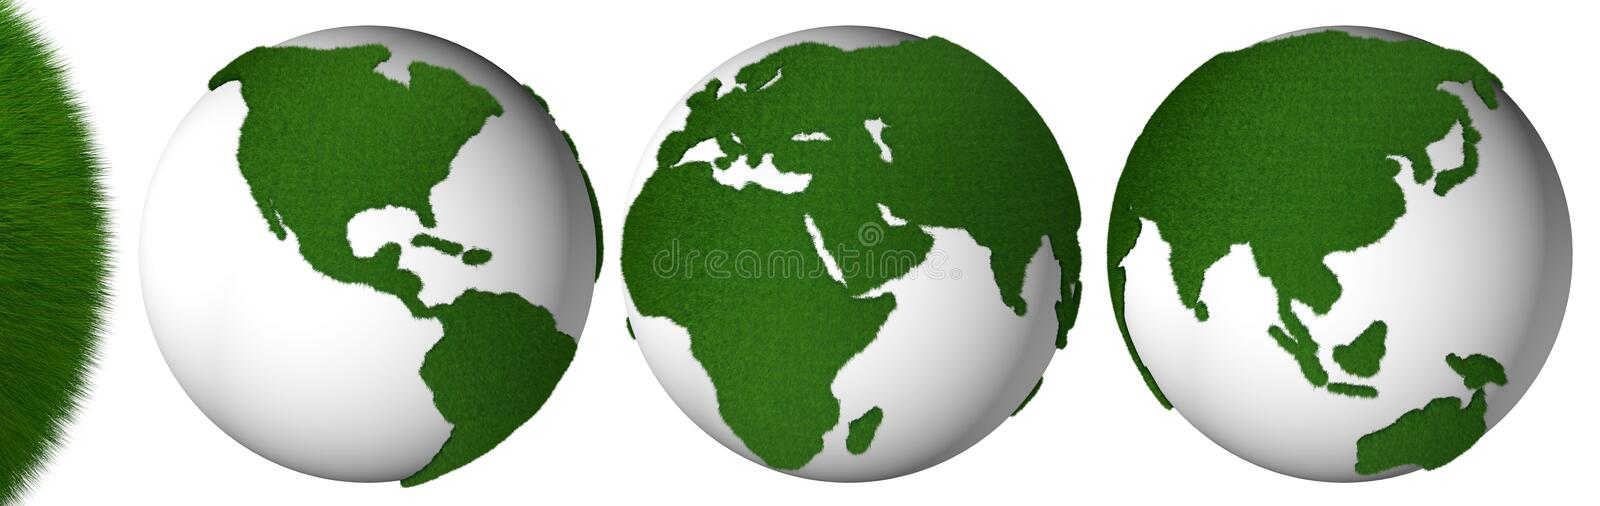 Grass planet stock images